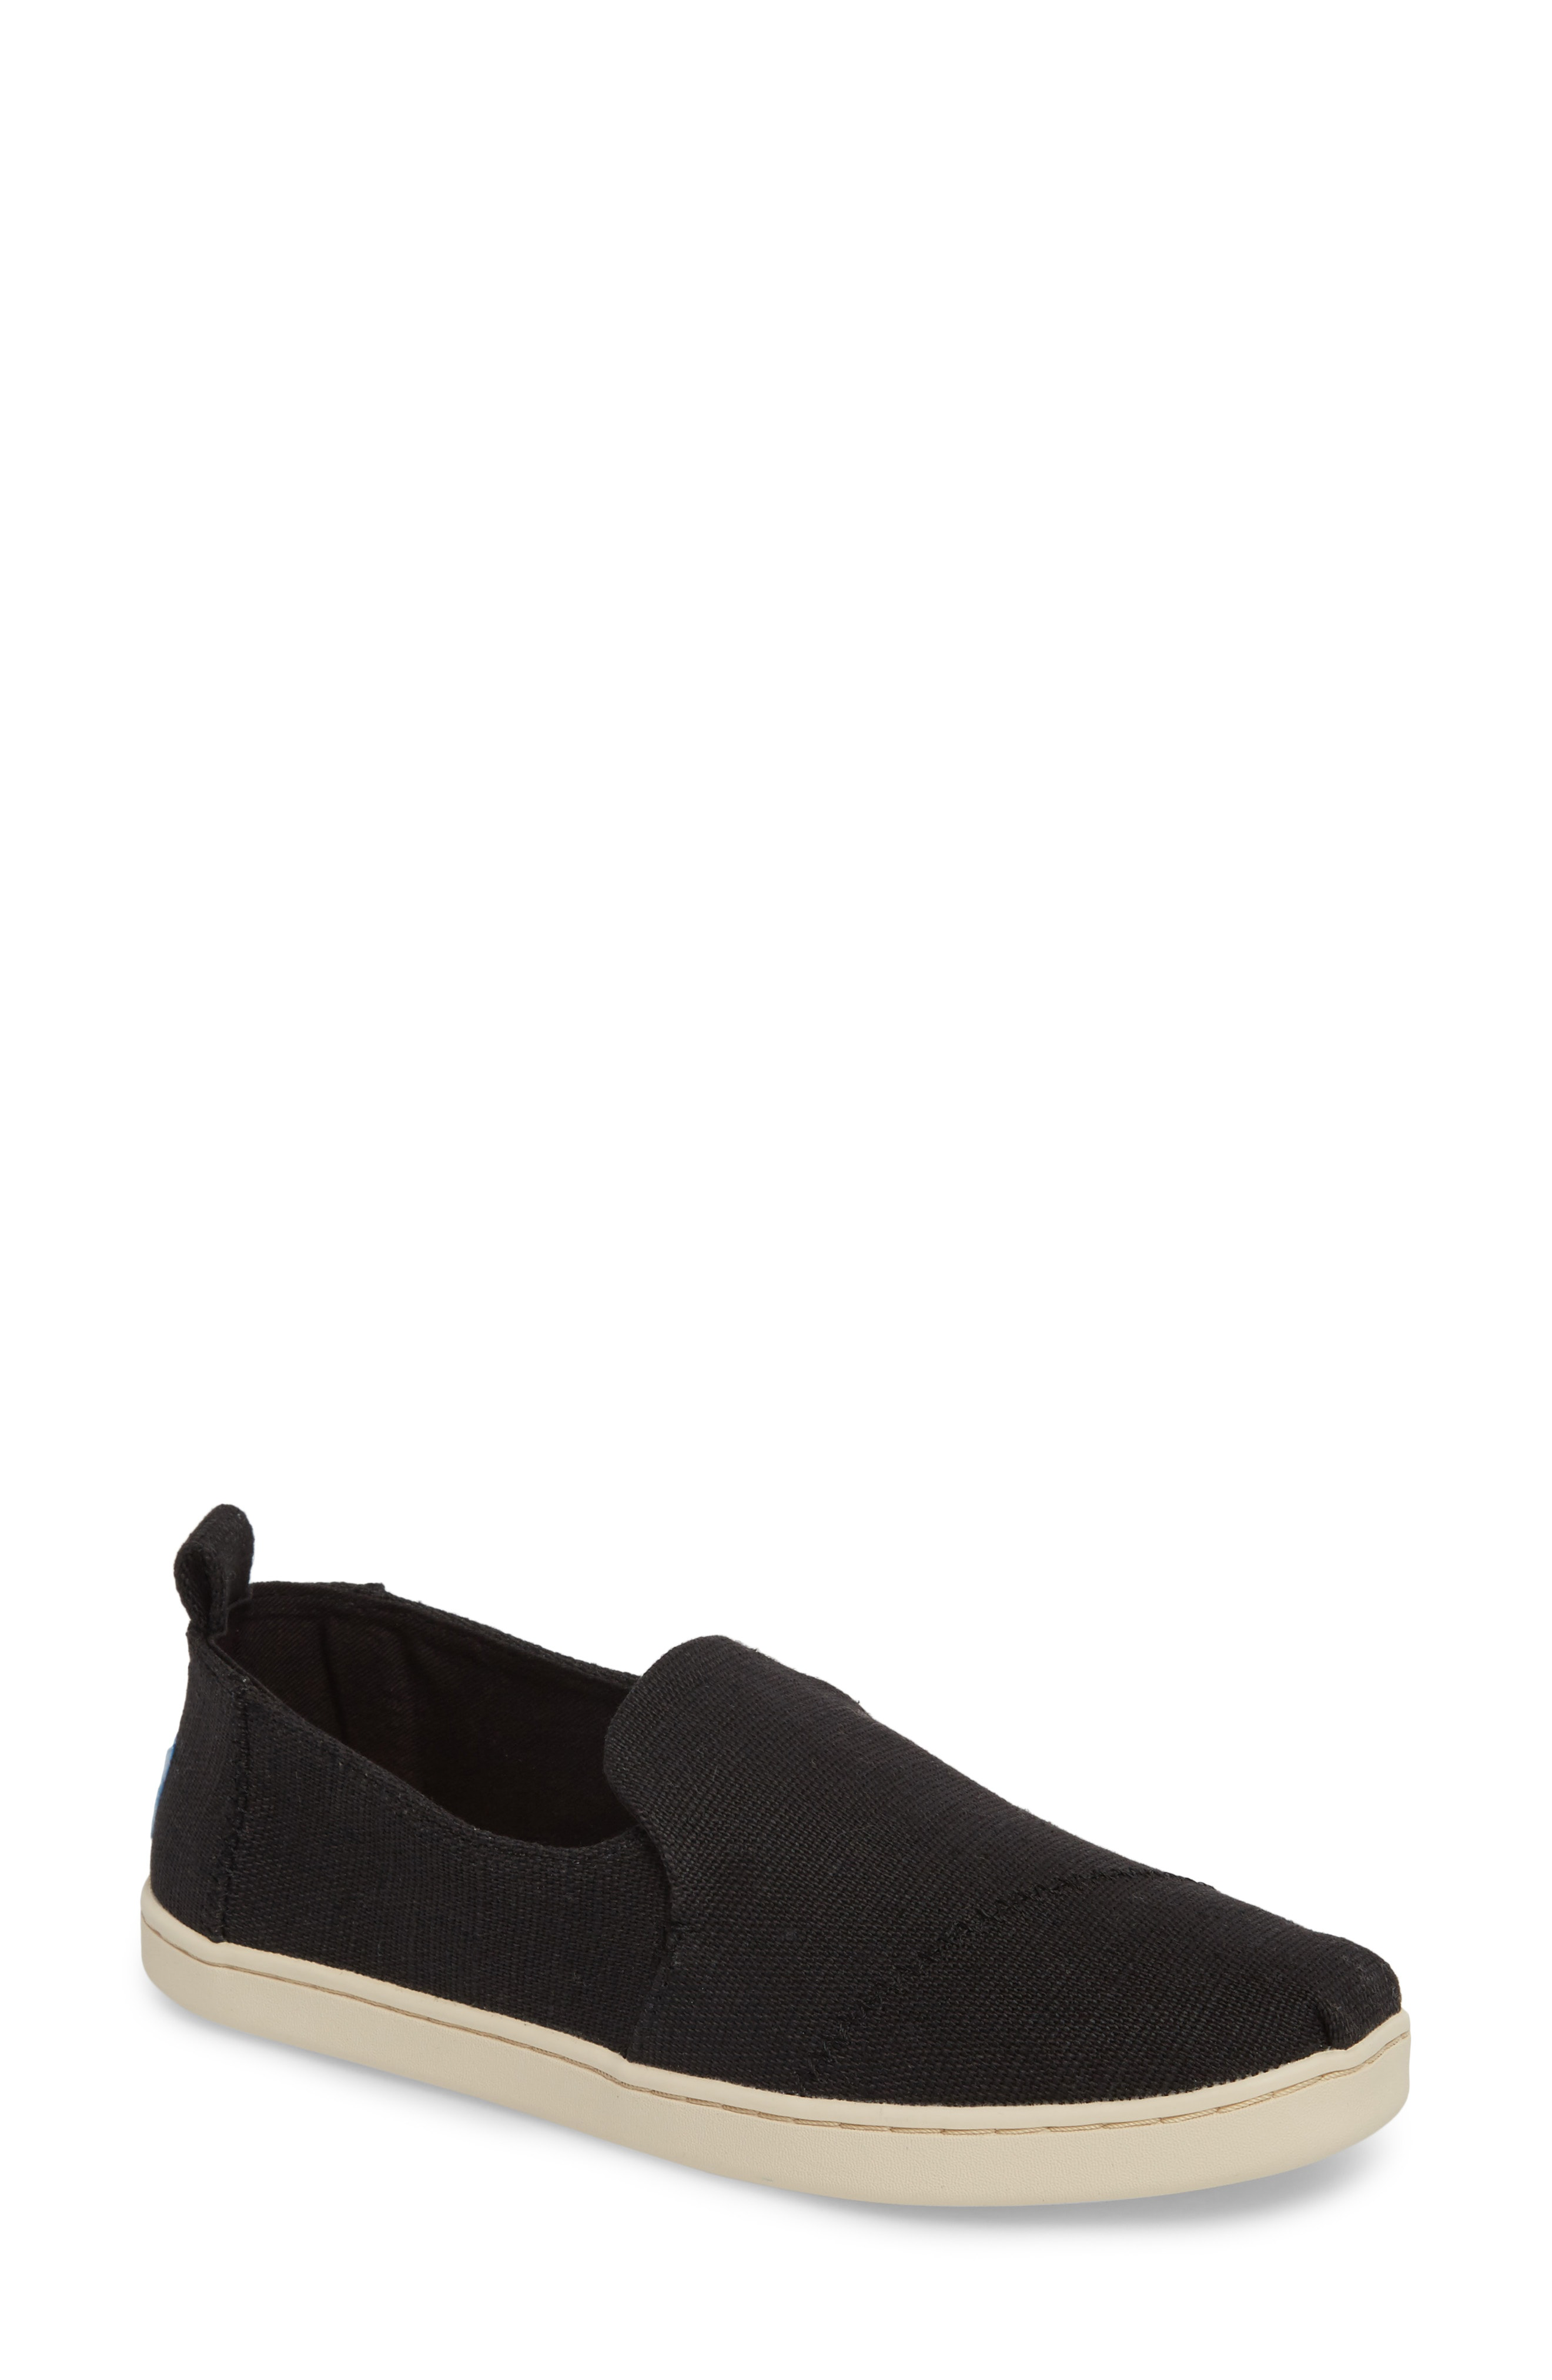 size 40 best place store Deconstructed Alpargata Slip-On in Black Heritage Canvas